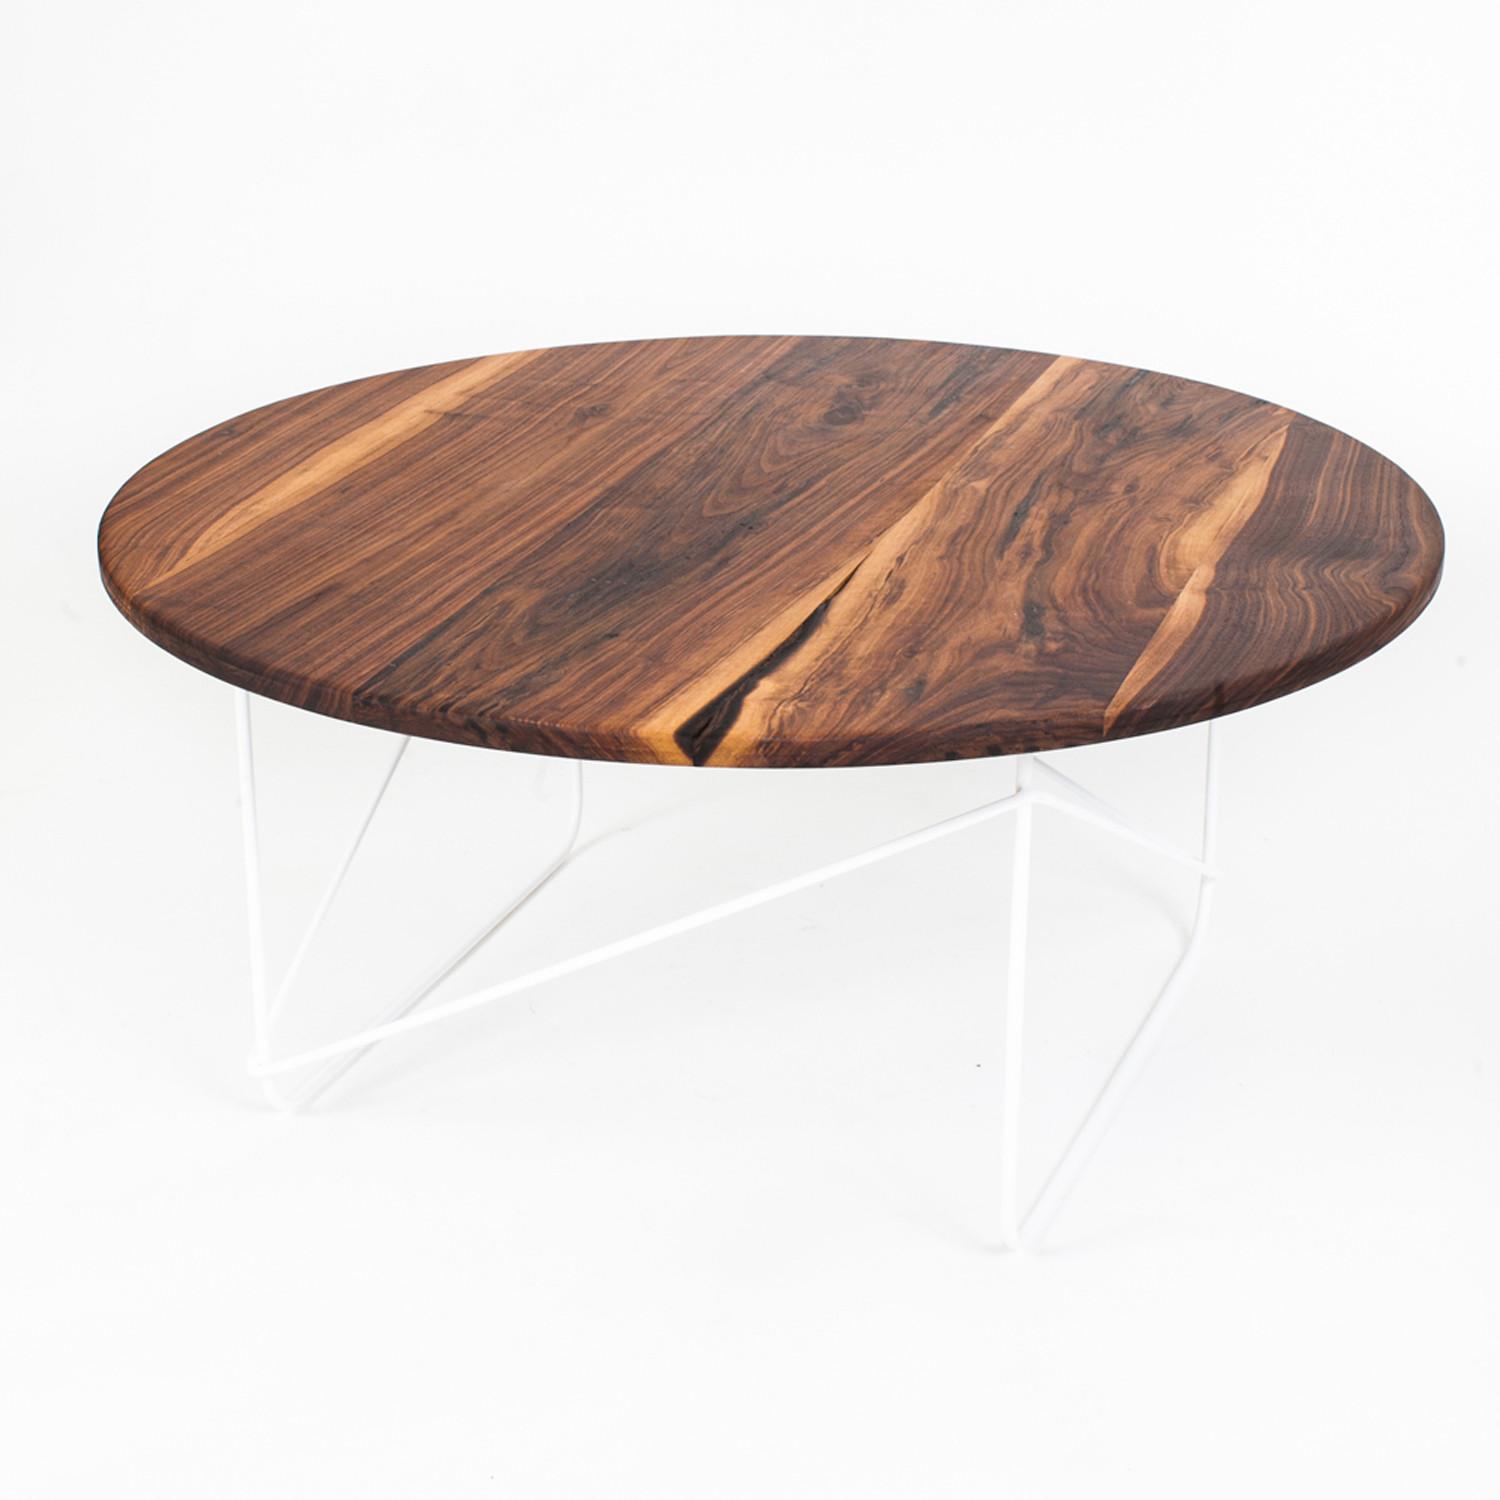 10 Best Collection of Dark Round Walnut Coffee Table